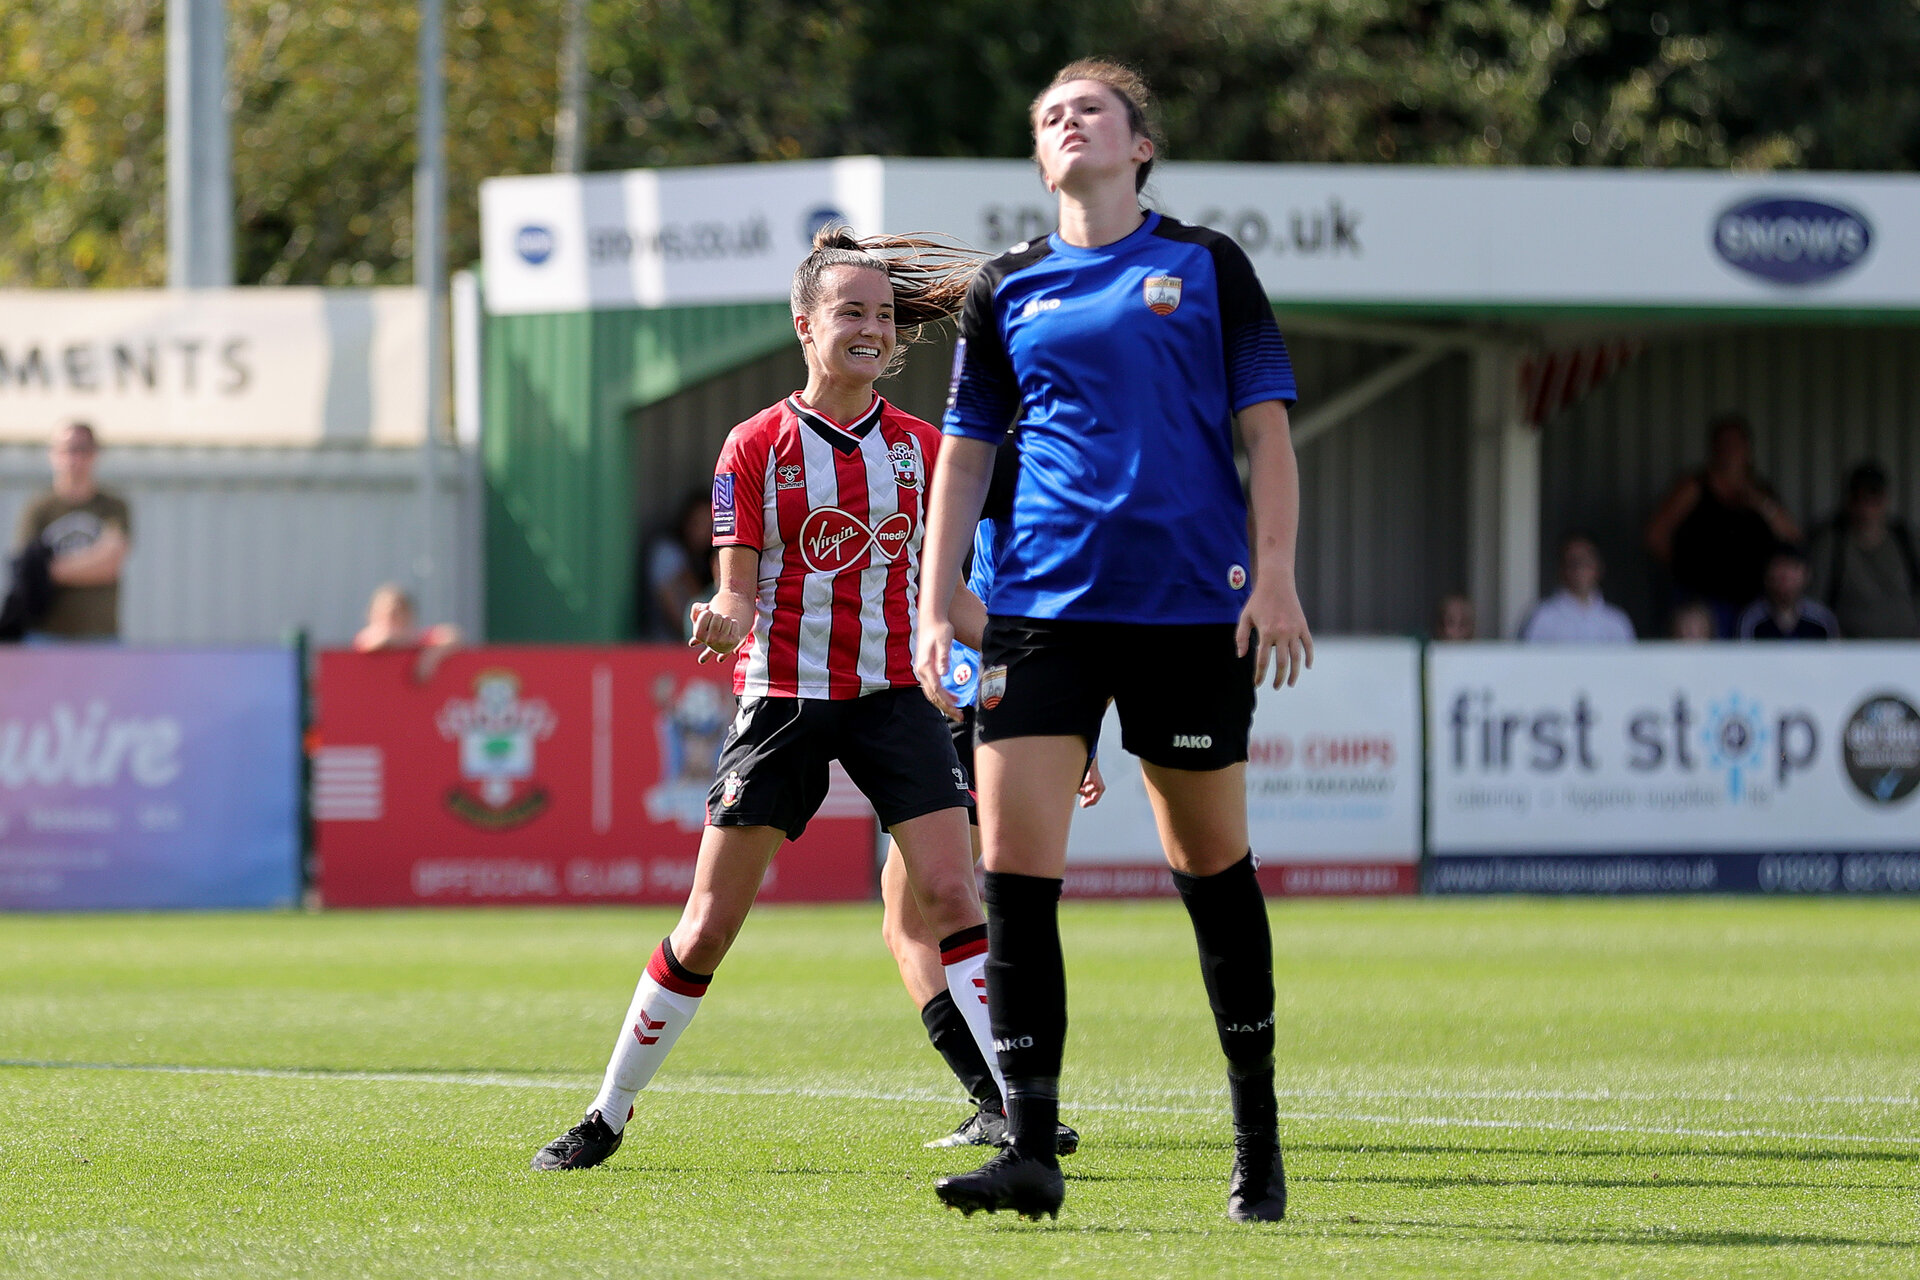 CHELTENHAM, ENGLAND - SEPTEMBER 26:  during the FA National League Southern Premier match between   Southampton Women and London Bees at The Snows Stadium on September 26, 2021 in  Cheltenham, England. (Photo by Isabelle Field/Southampton FC via Getty Images)